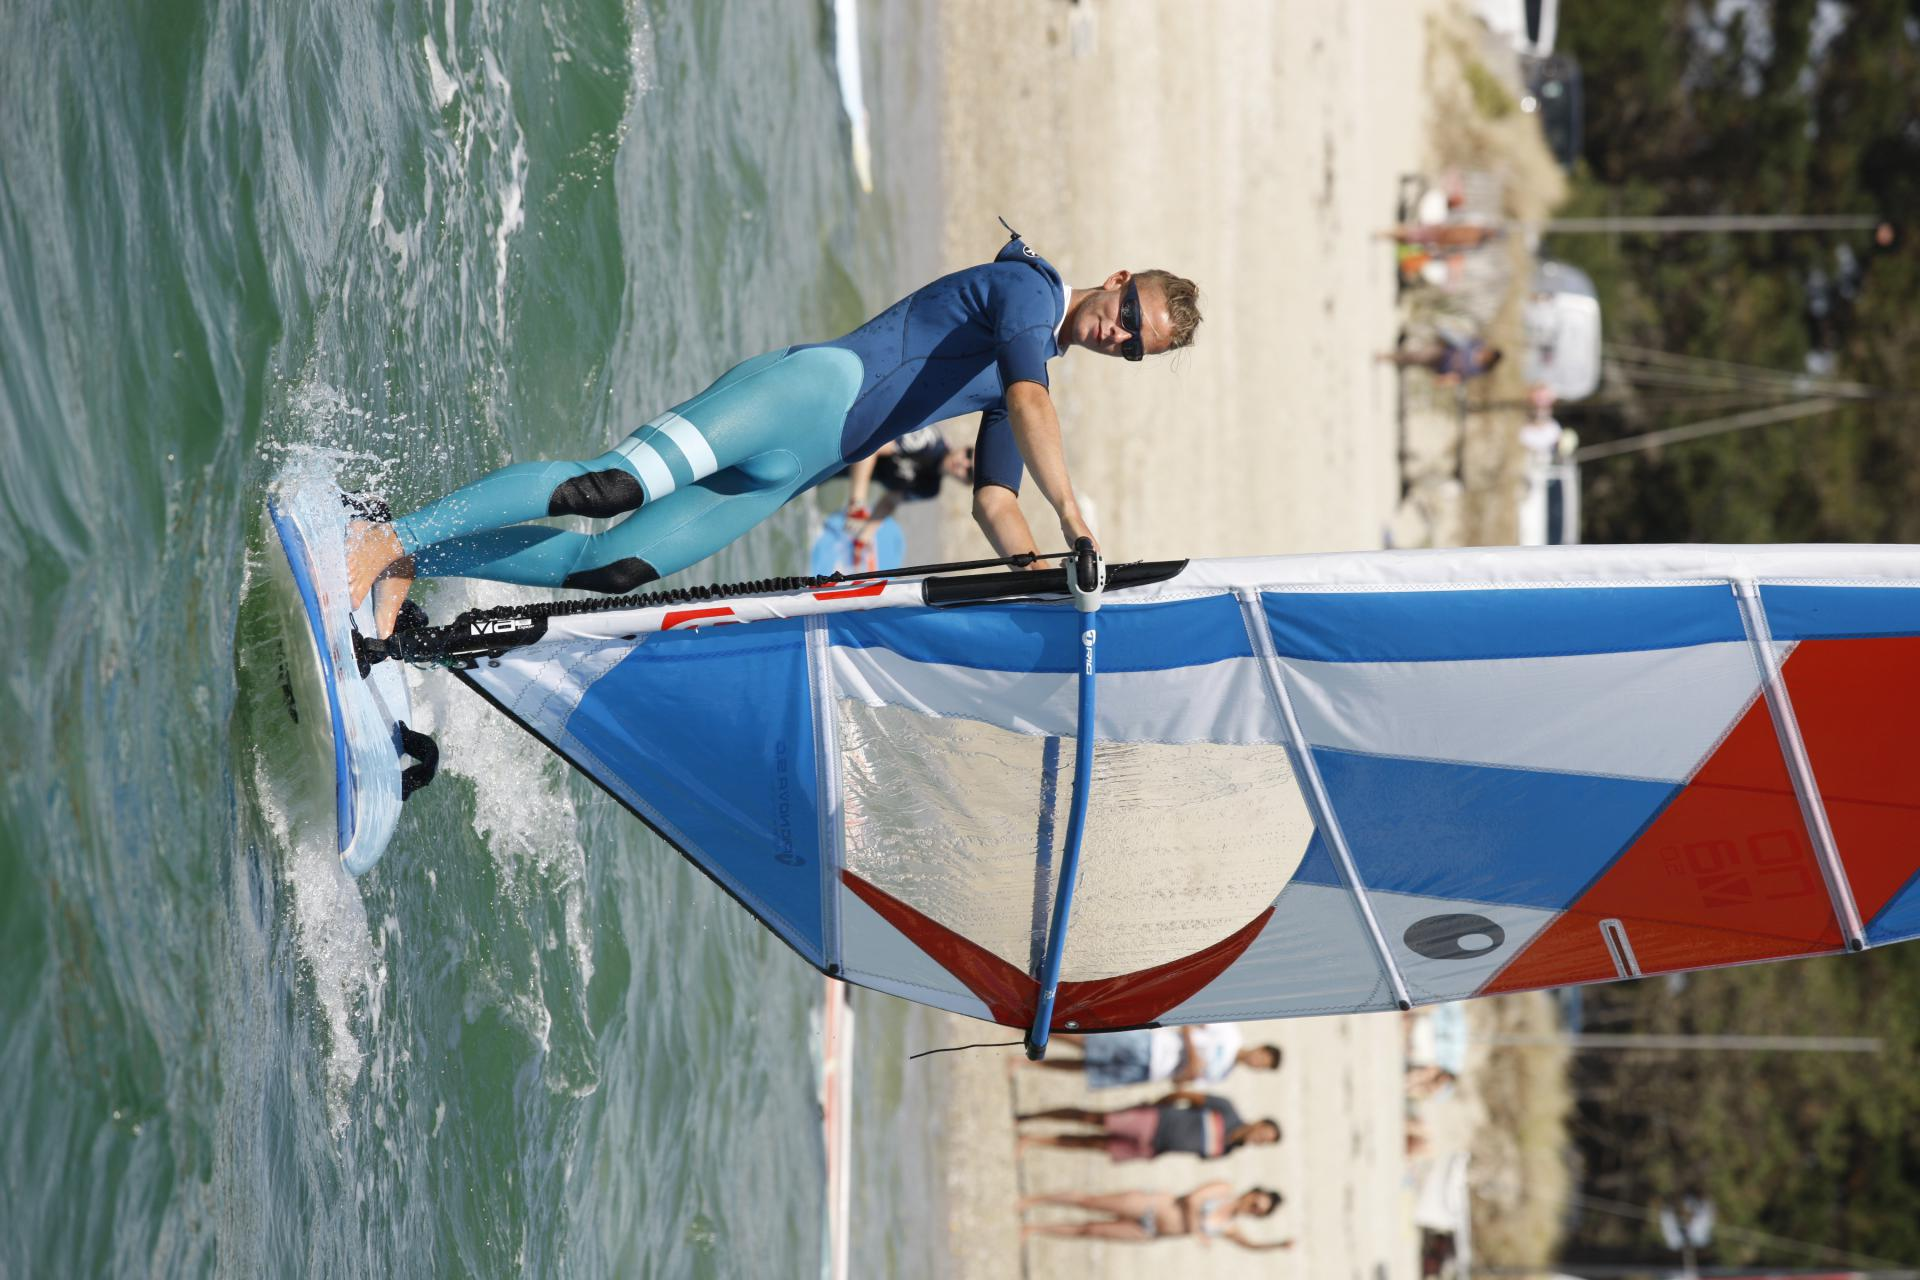 Gift voucher idea: windsurf at Club Nautique du Rohu (Morbihan, Brittany)